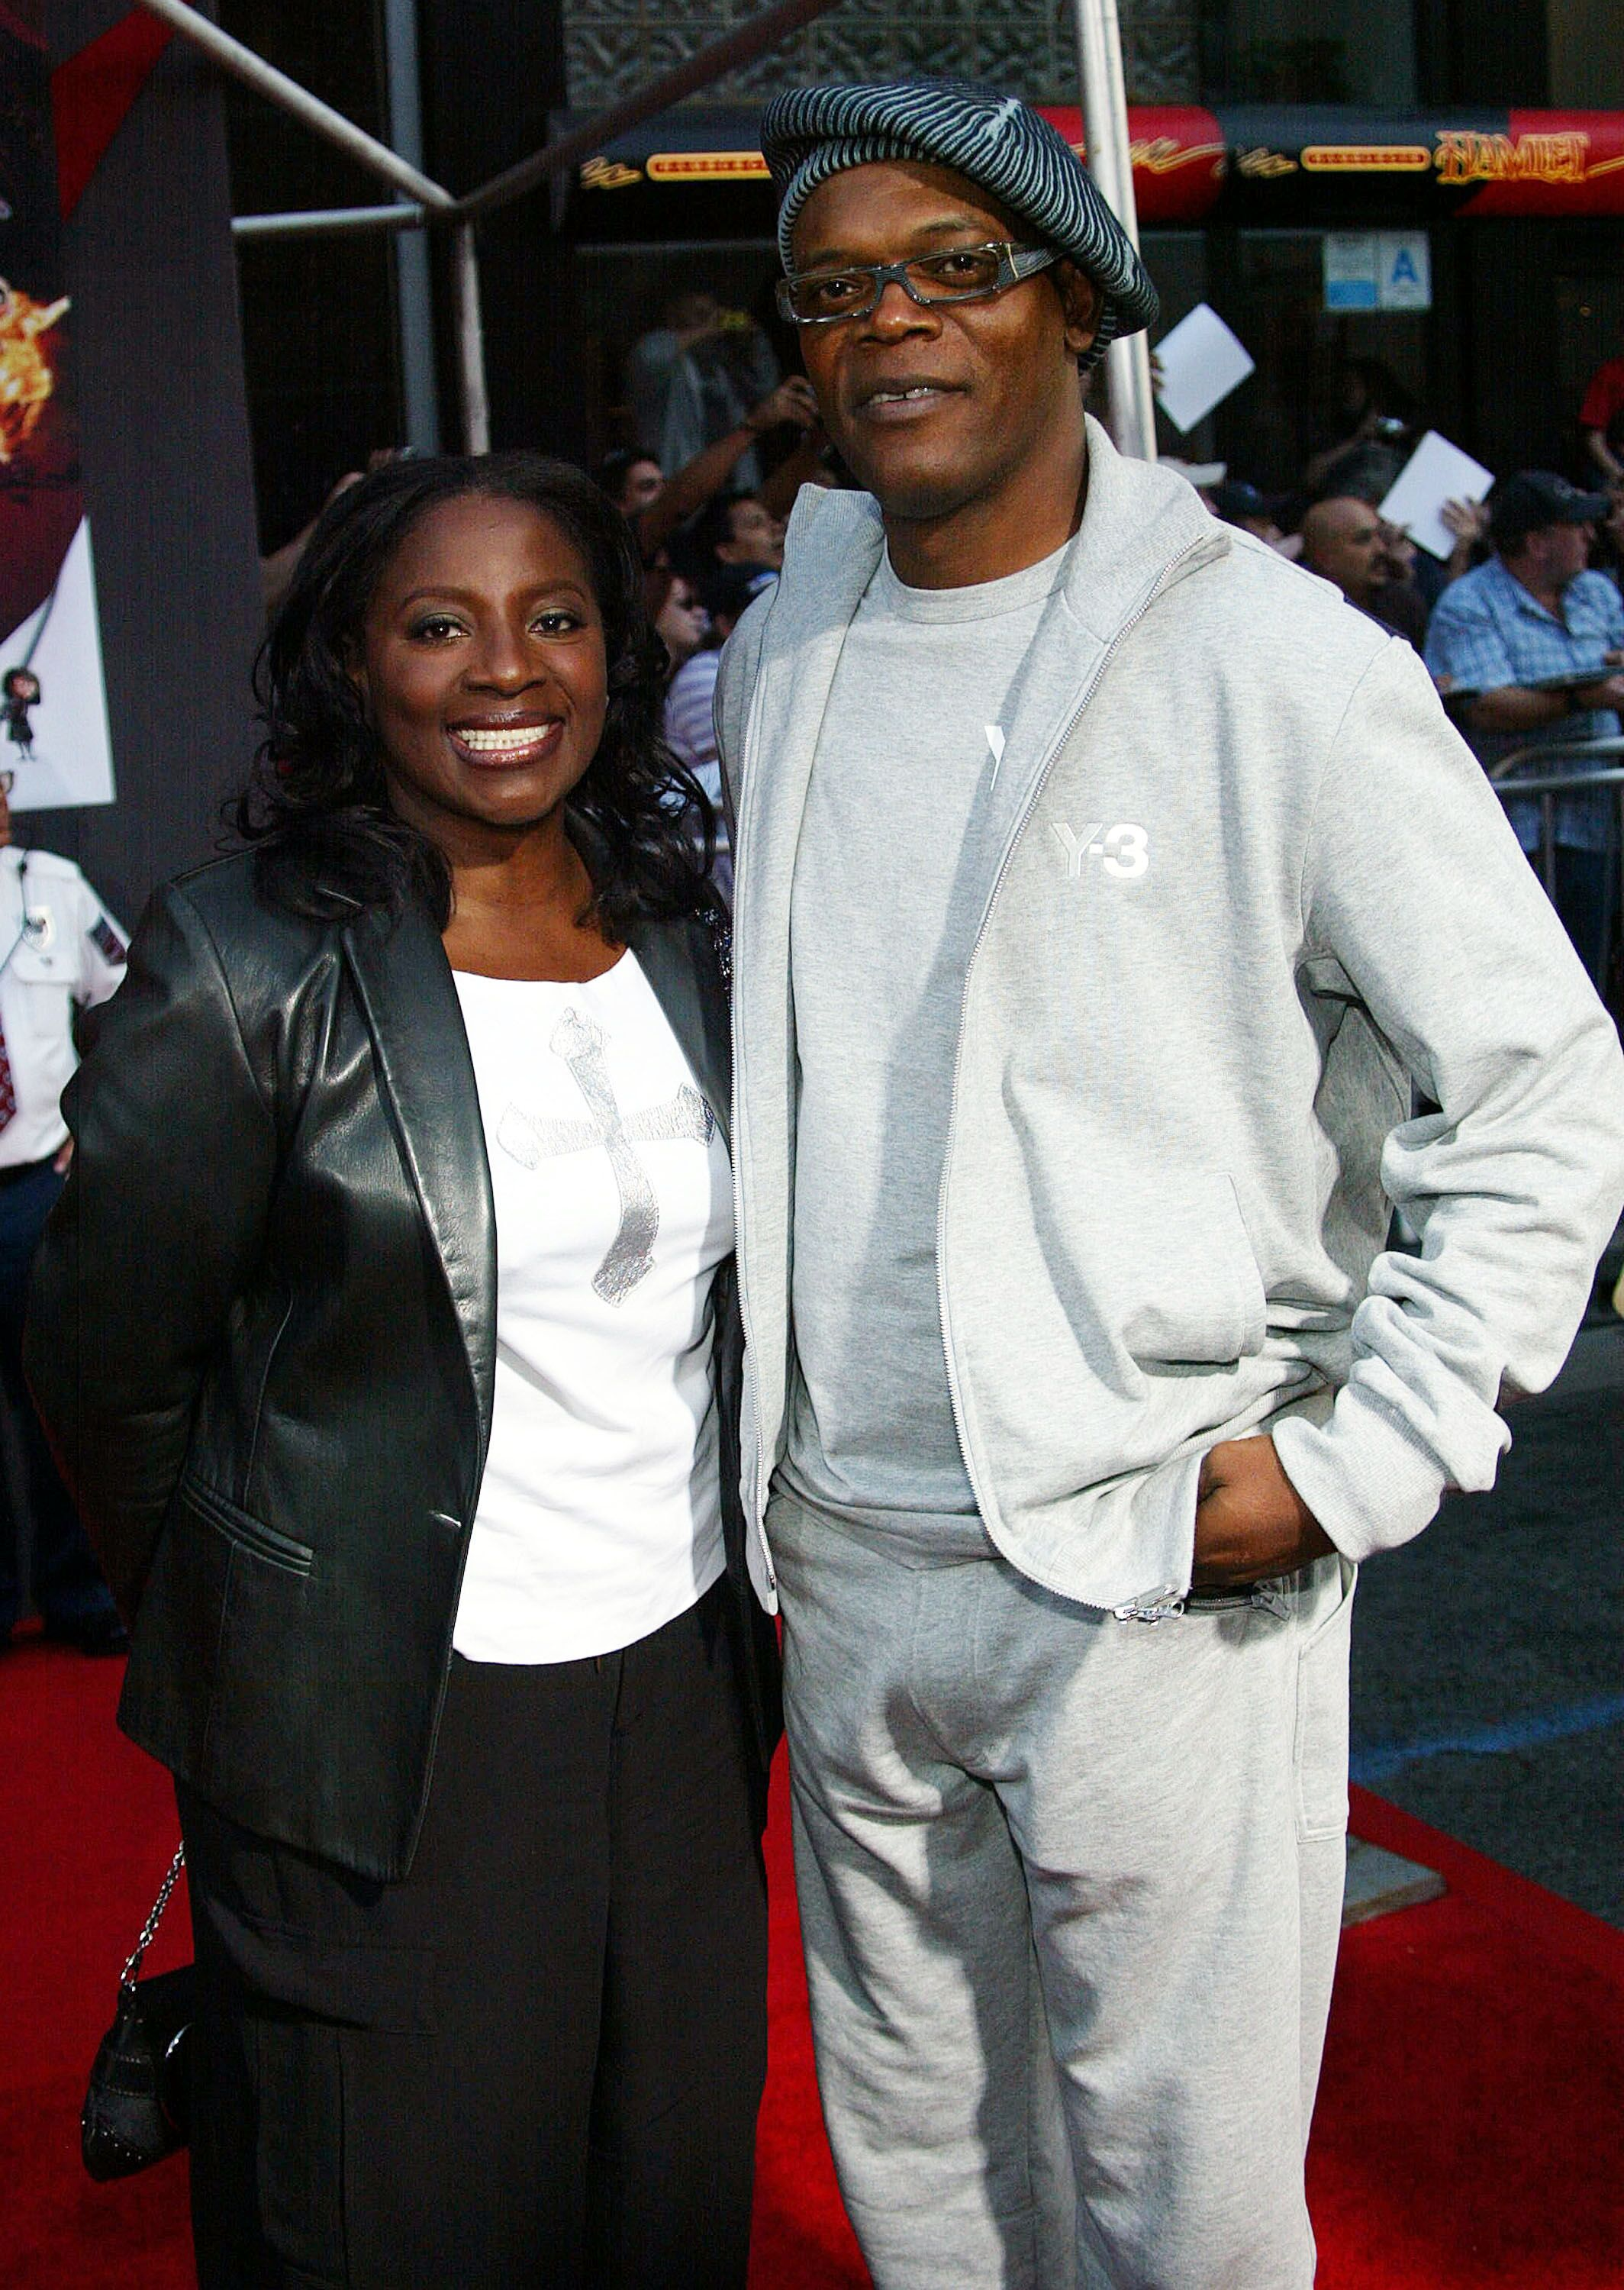 """Samuel L. Jackson and wife LaTanya Richardson at the film premiere of """"The Incredibles"""" in Hollywood, California in 2004 